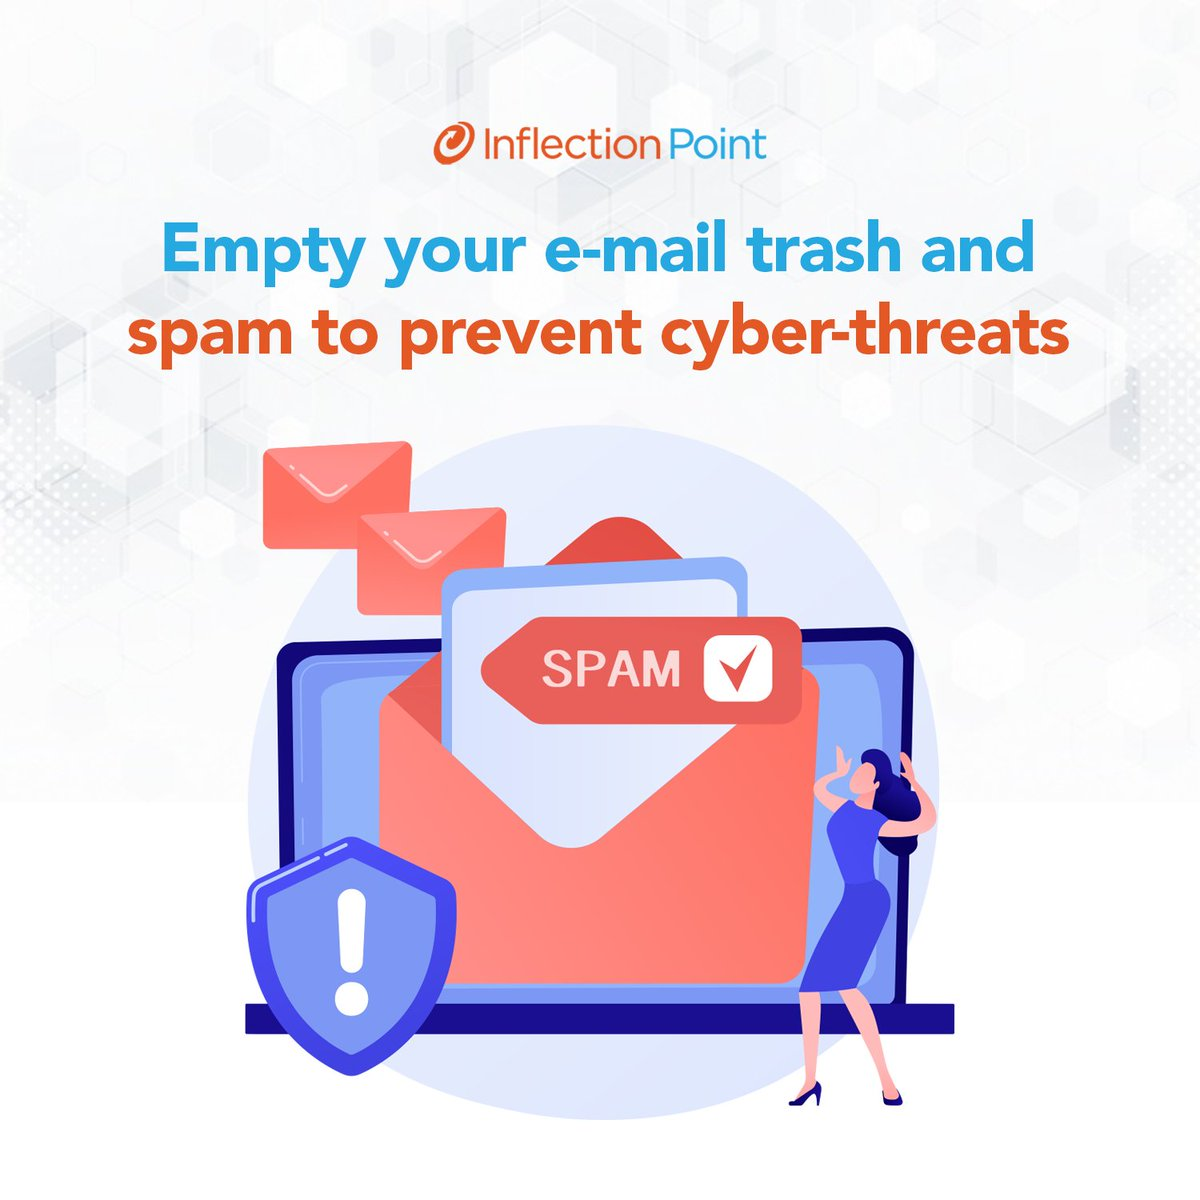 Empty your email trash and spam. If you don't delete them, they will remain in your system, causing cyber-threats in the future. 👾 #WeAreIPS https://t.co/US4QsIxwJ1